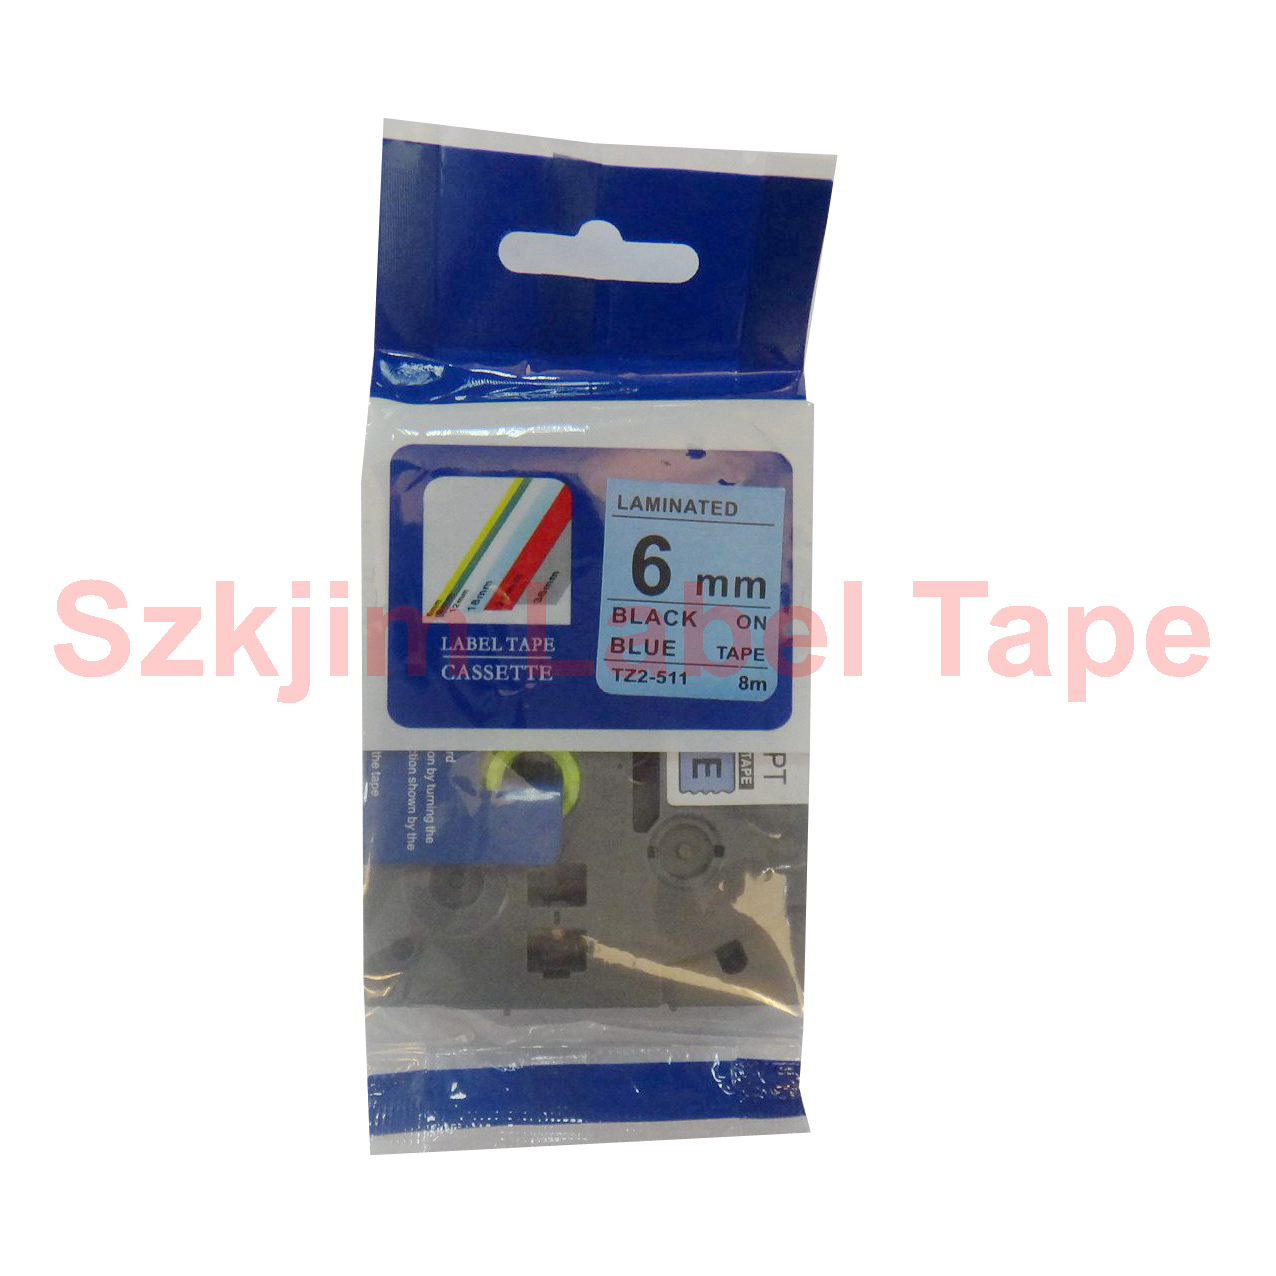 Compatible TZ631 Black on Yellow Label Tape for Brother P-Touch Serial Label Printing Machines 12mm x 8m